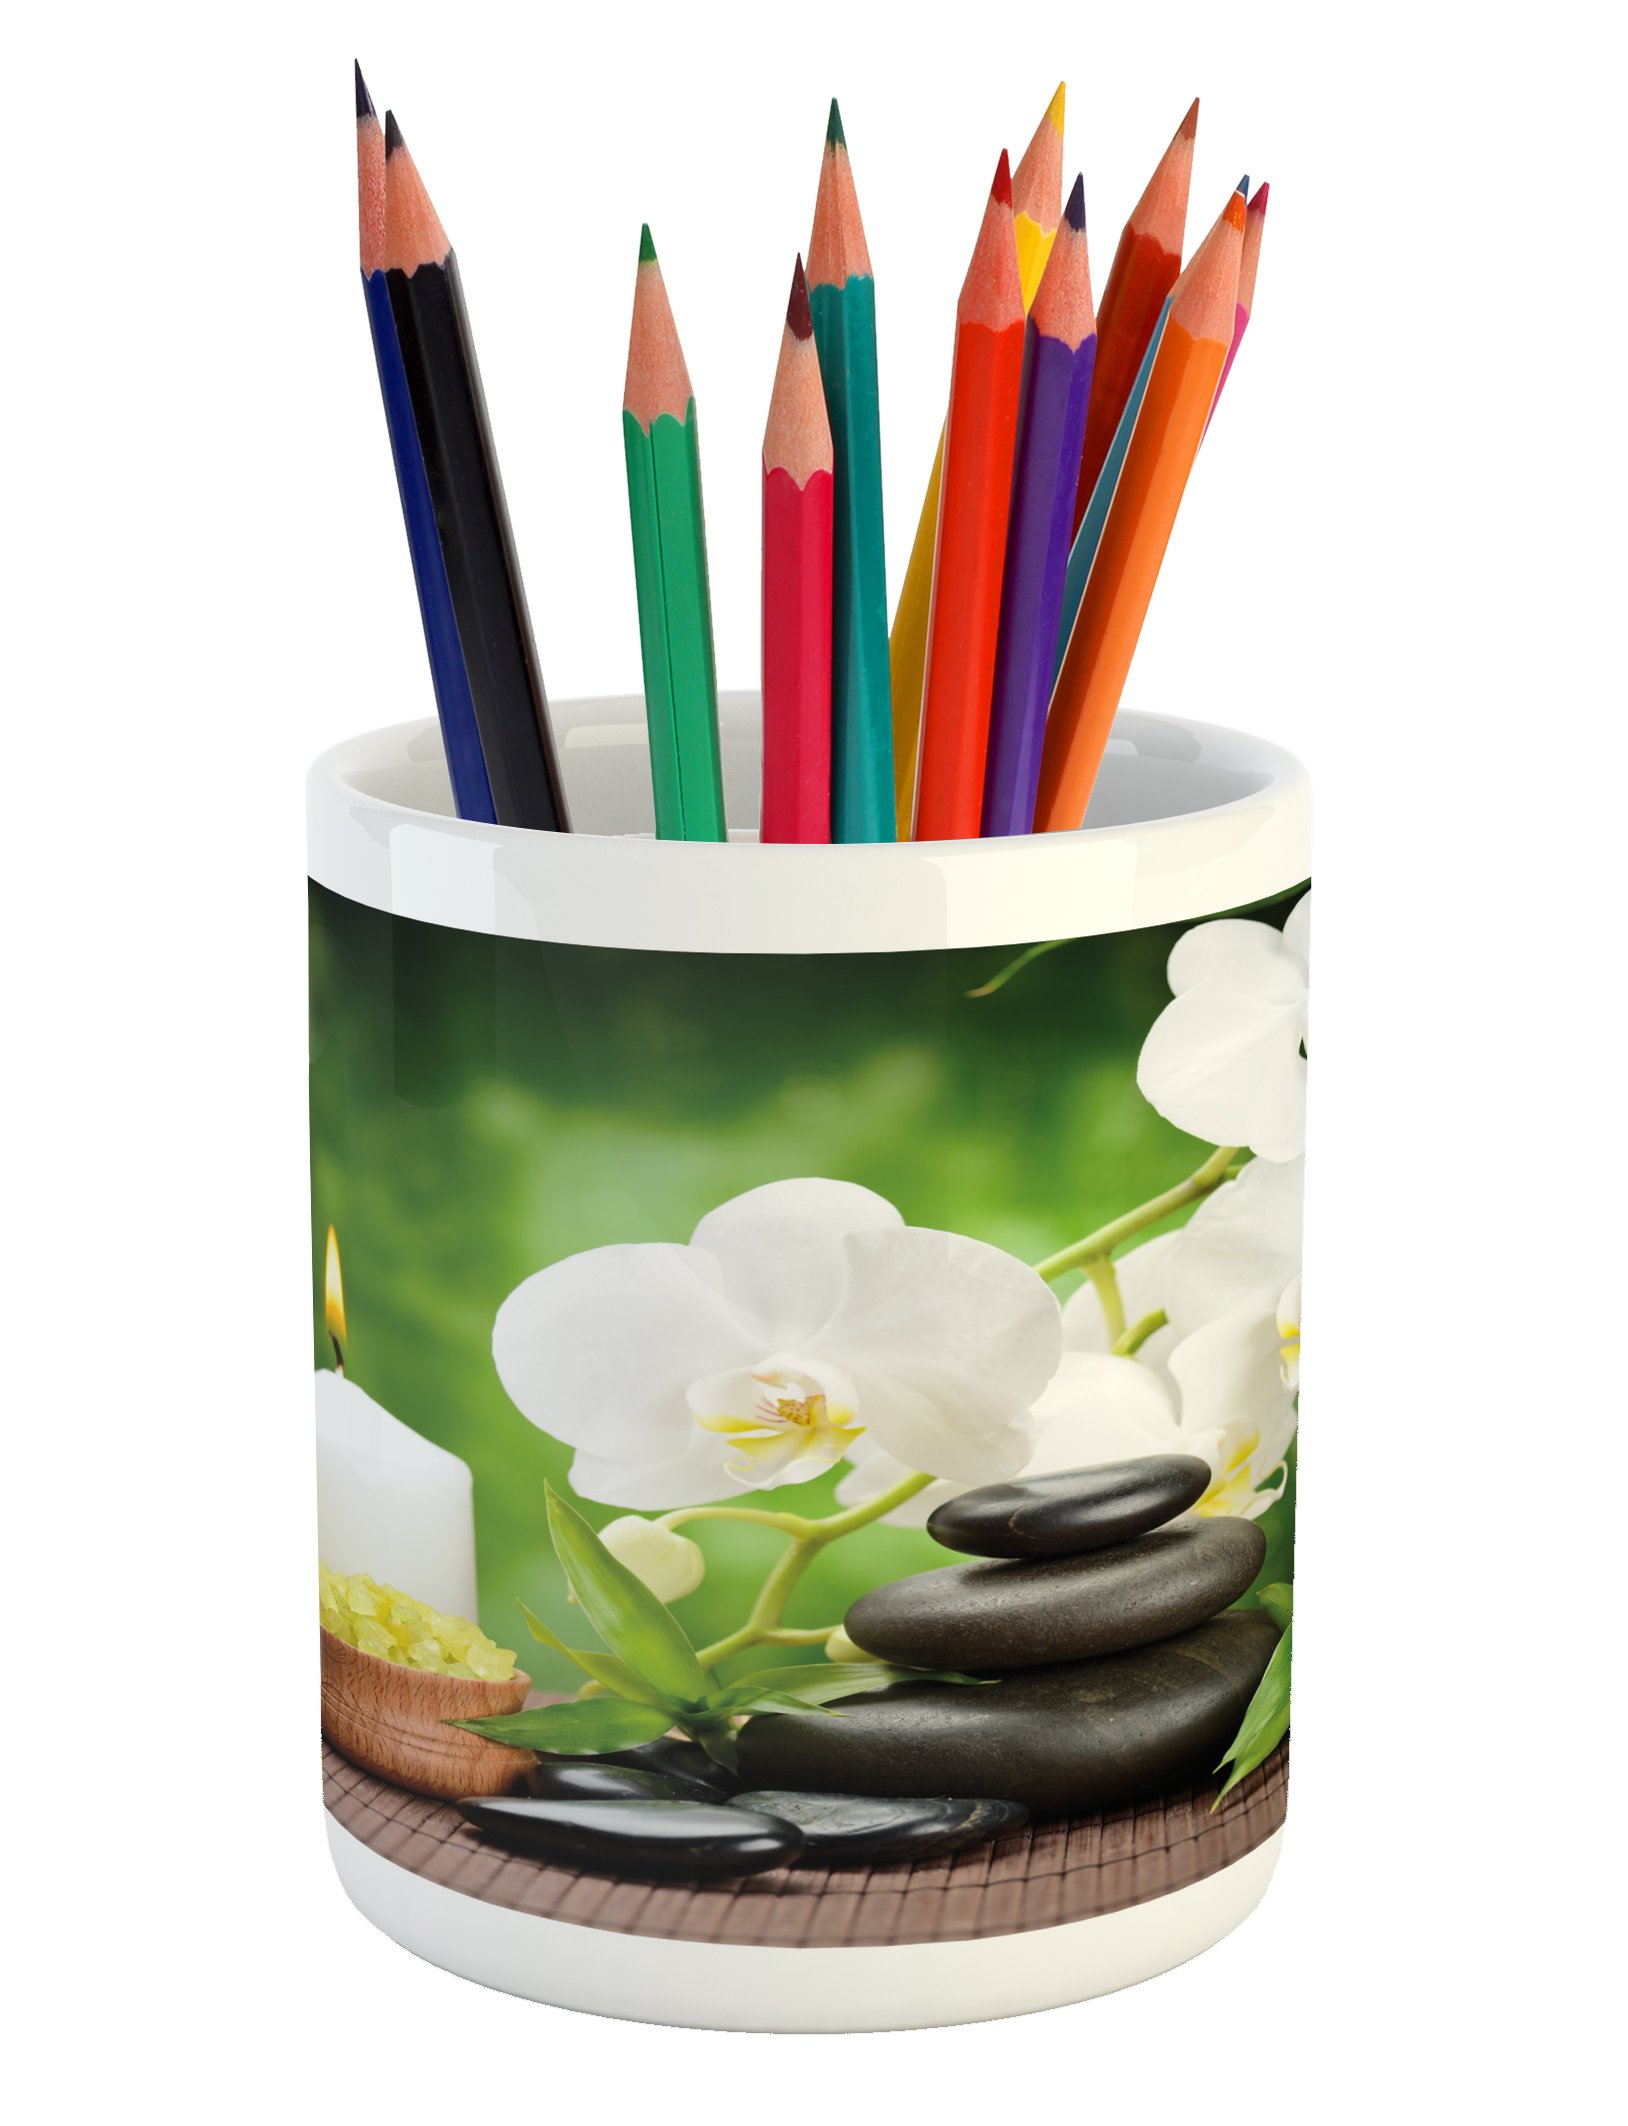 Ambesonne Spa Pencil Pen Holder, Zen Stones with Orchid and Candles Green Plants at the Background Print, Printed Ceramic Pencil Pen Holder for Desk Office Accessory, White Green and Black by Ambesonne (Image #1)